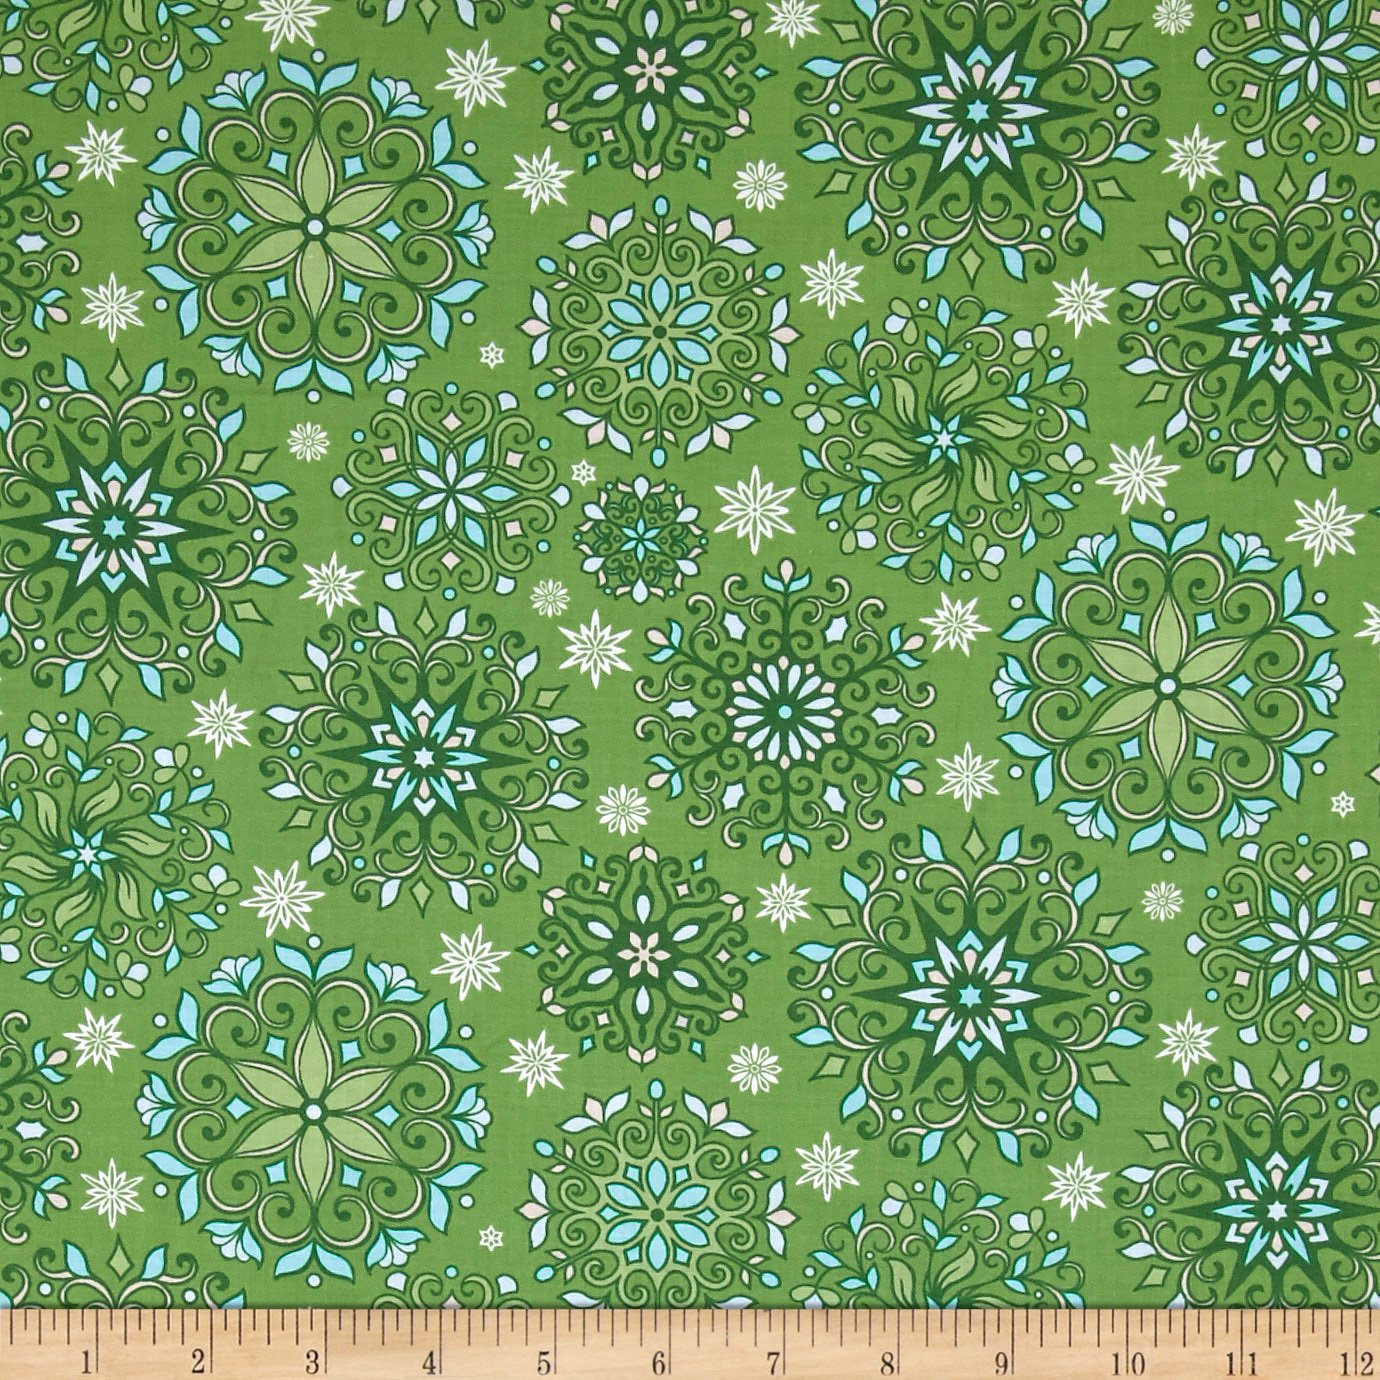 INOpets.com Anything for Pets Parents & Their Pets Contempo Winter Games Snowflakes Green Fabric